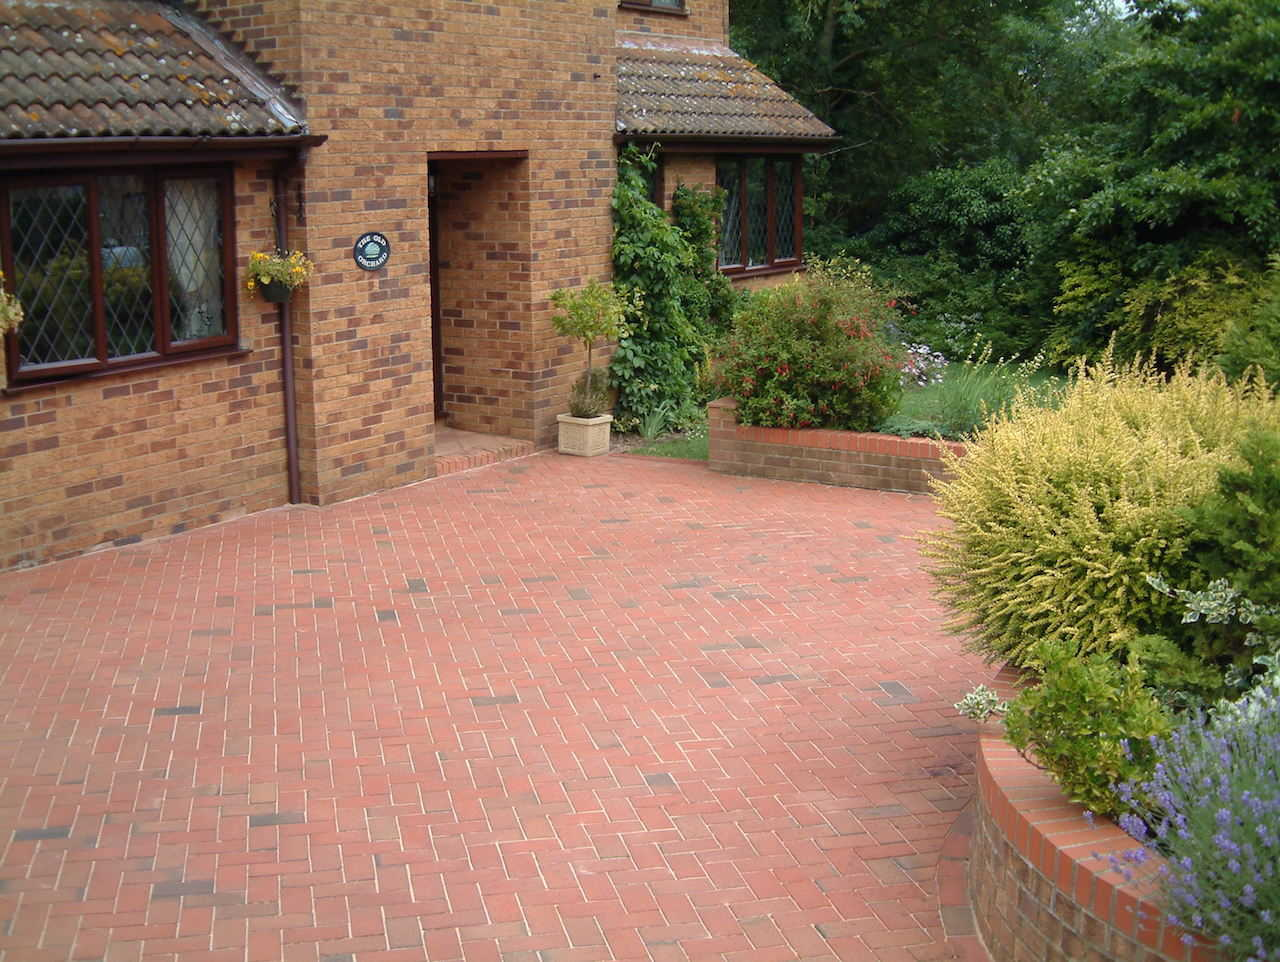 New driveways Sunderland